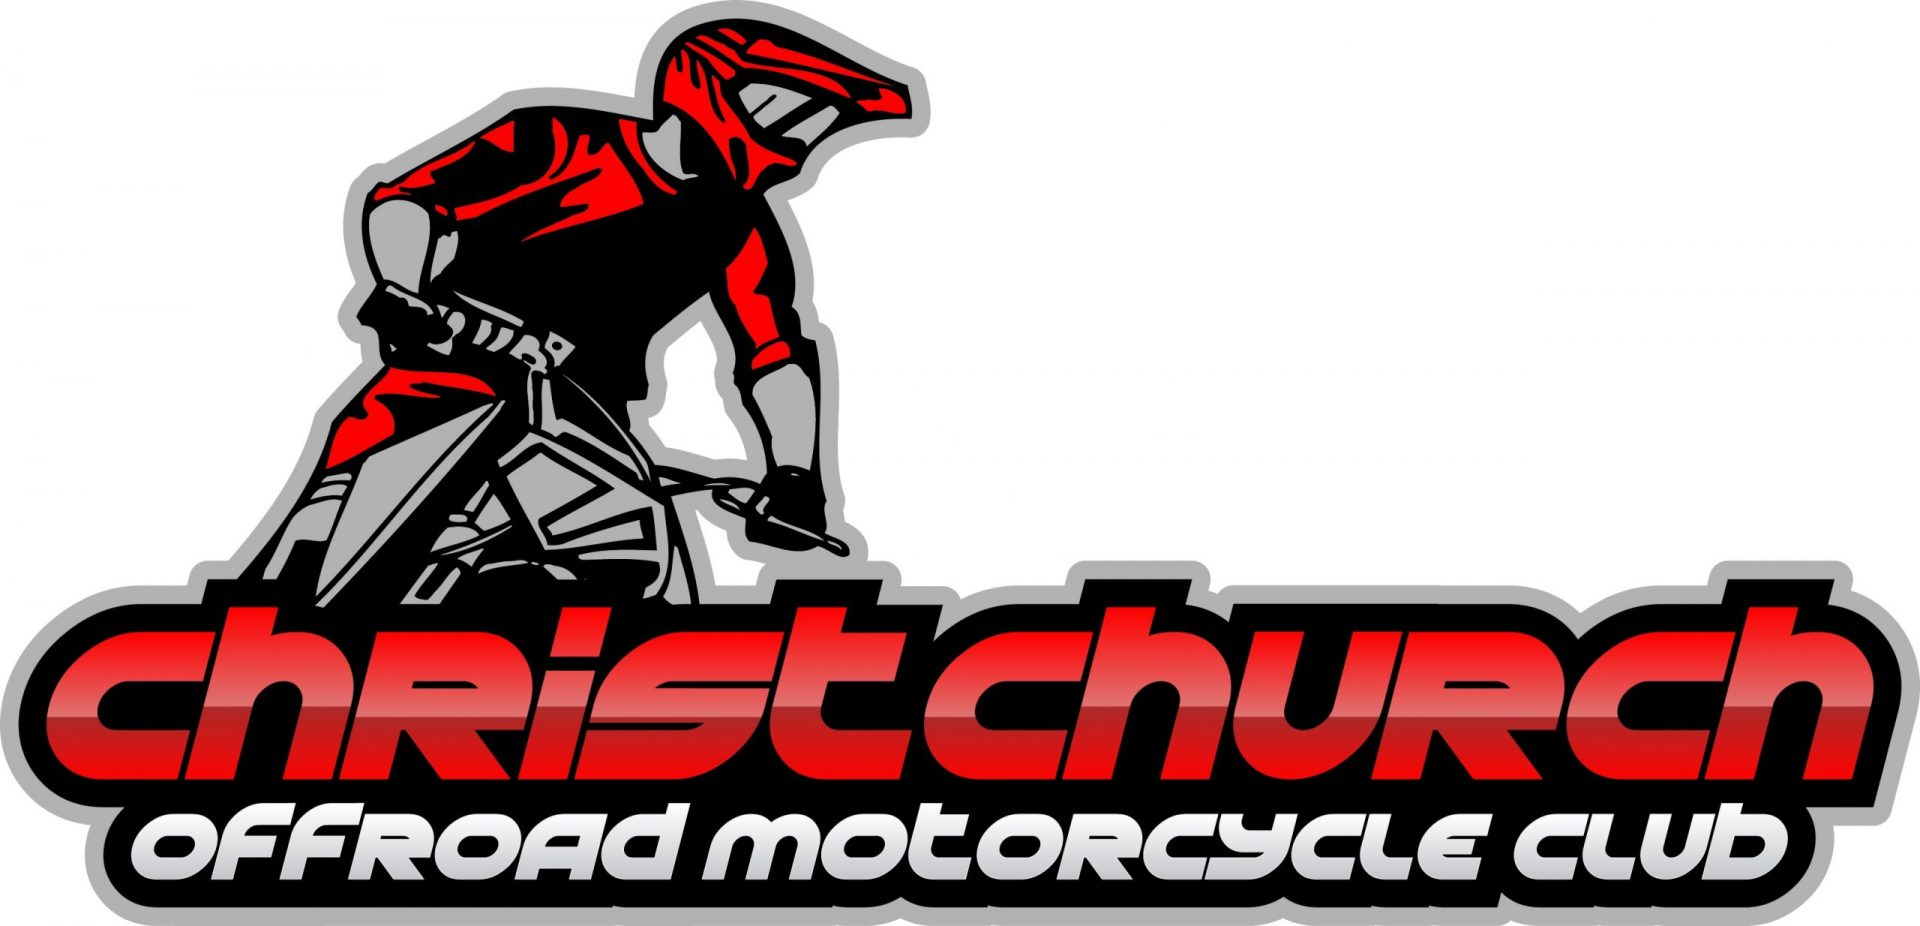 Christchurch Off-Road Motorcycle Club